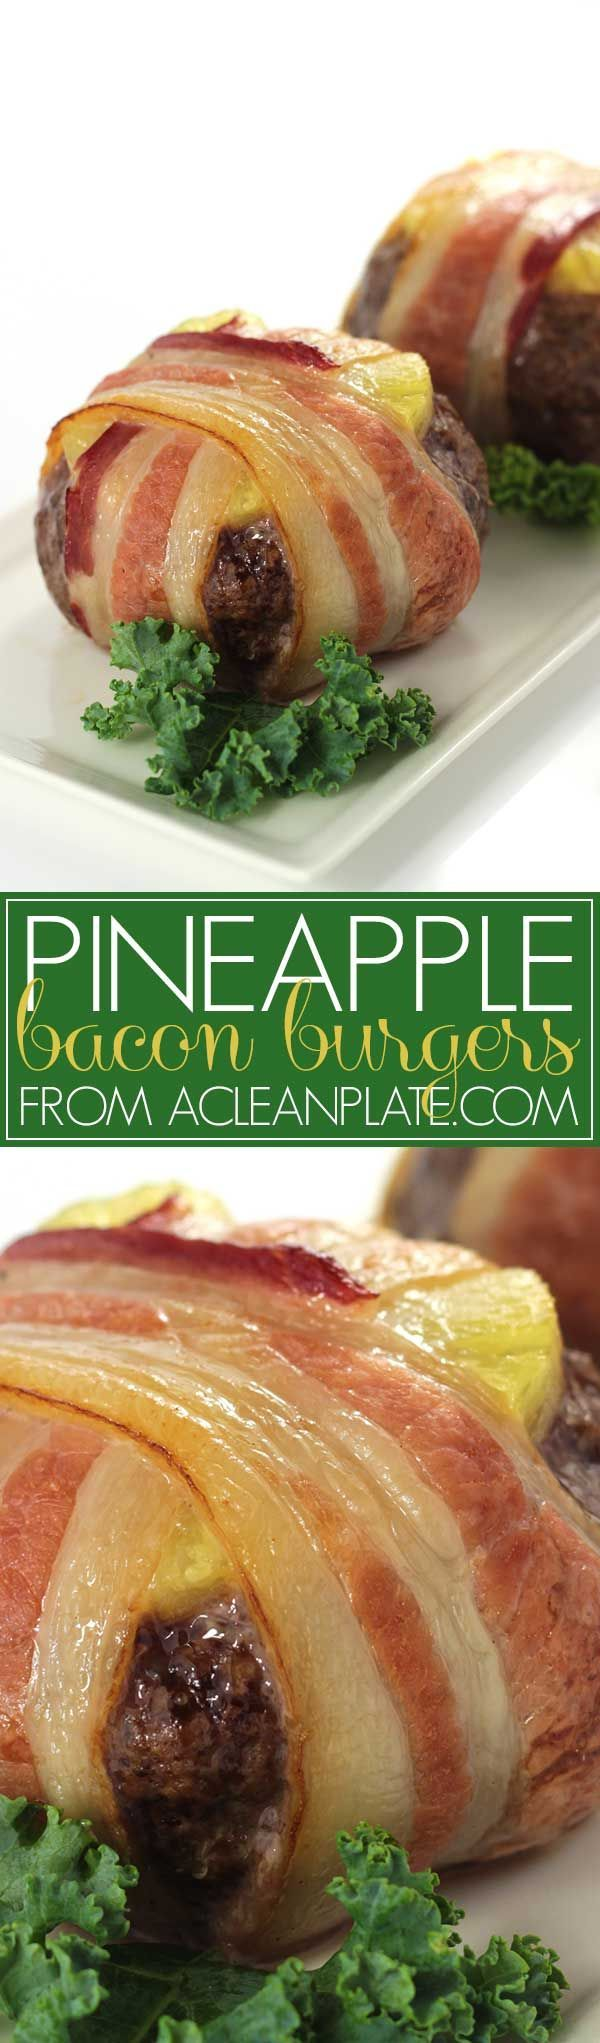 Pineapple Bacon Burgers recipe from http://acleanplate.com